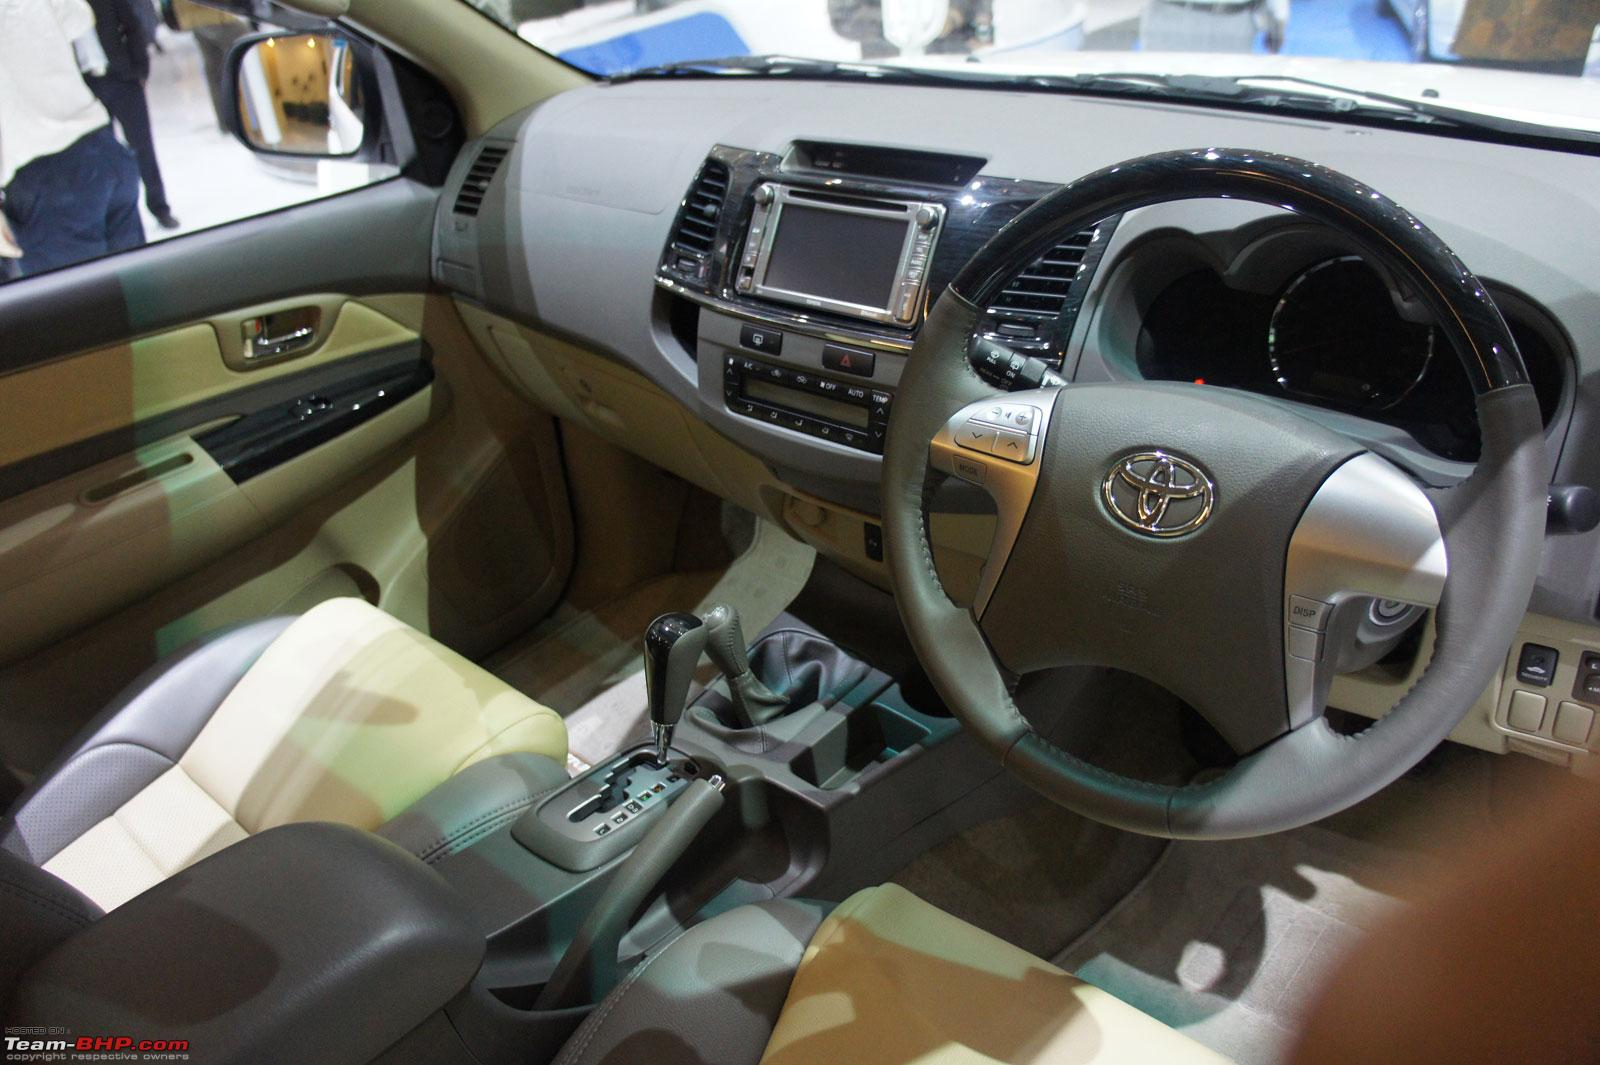 Toyota fortuner facelift spied update uncovered pics on pg 6 fortuner12